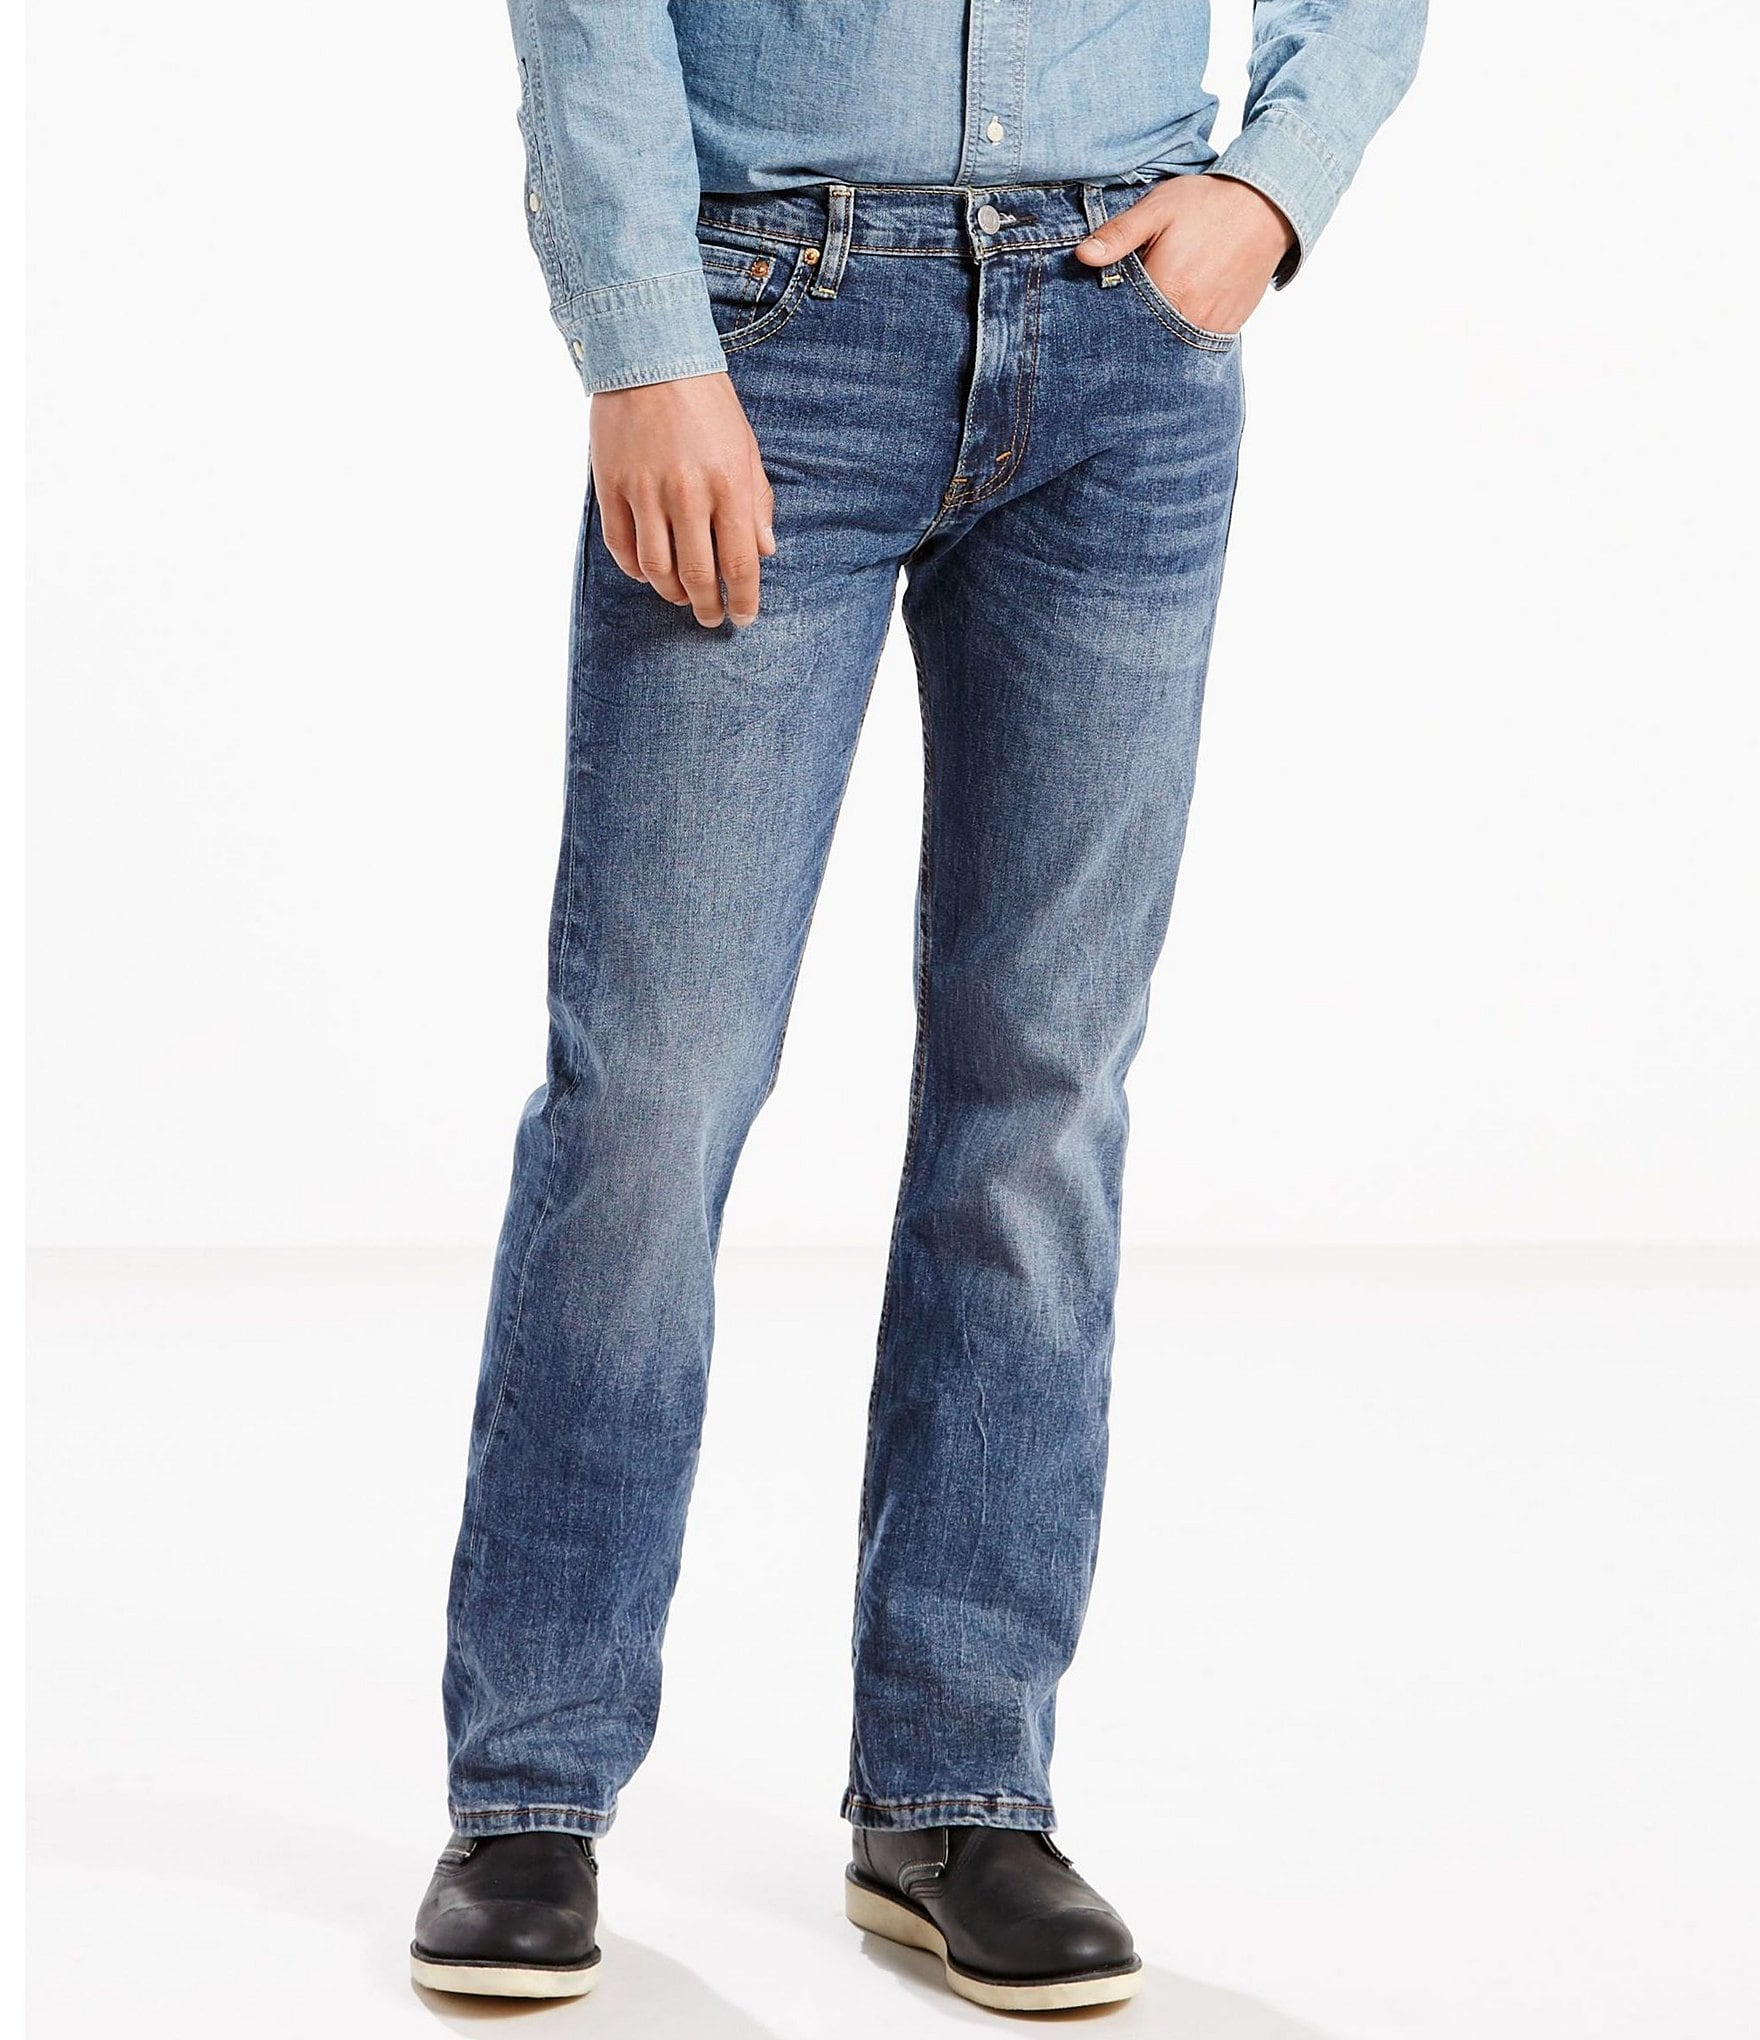 Levis Jeans For Women Bootcut